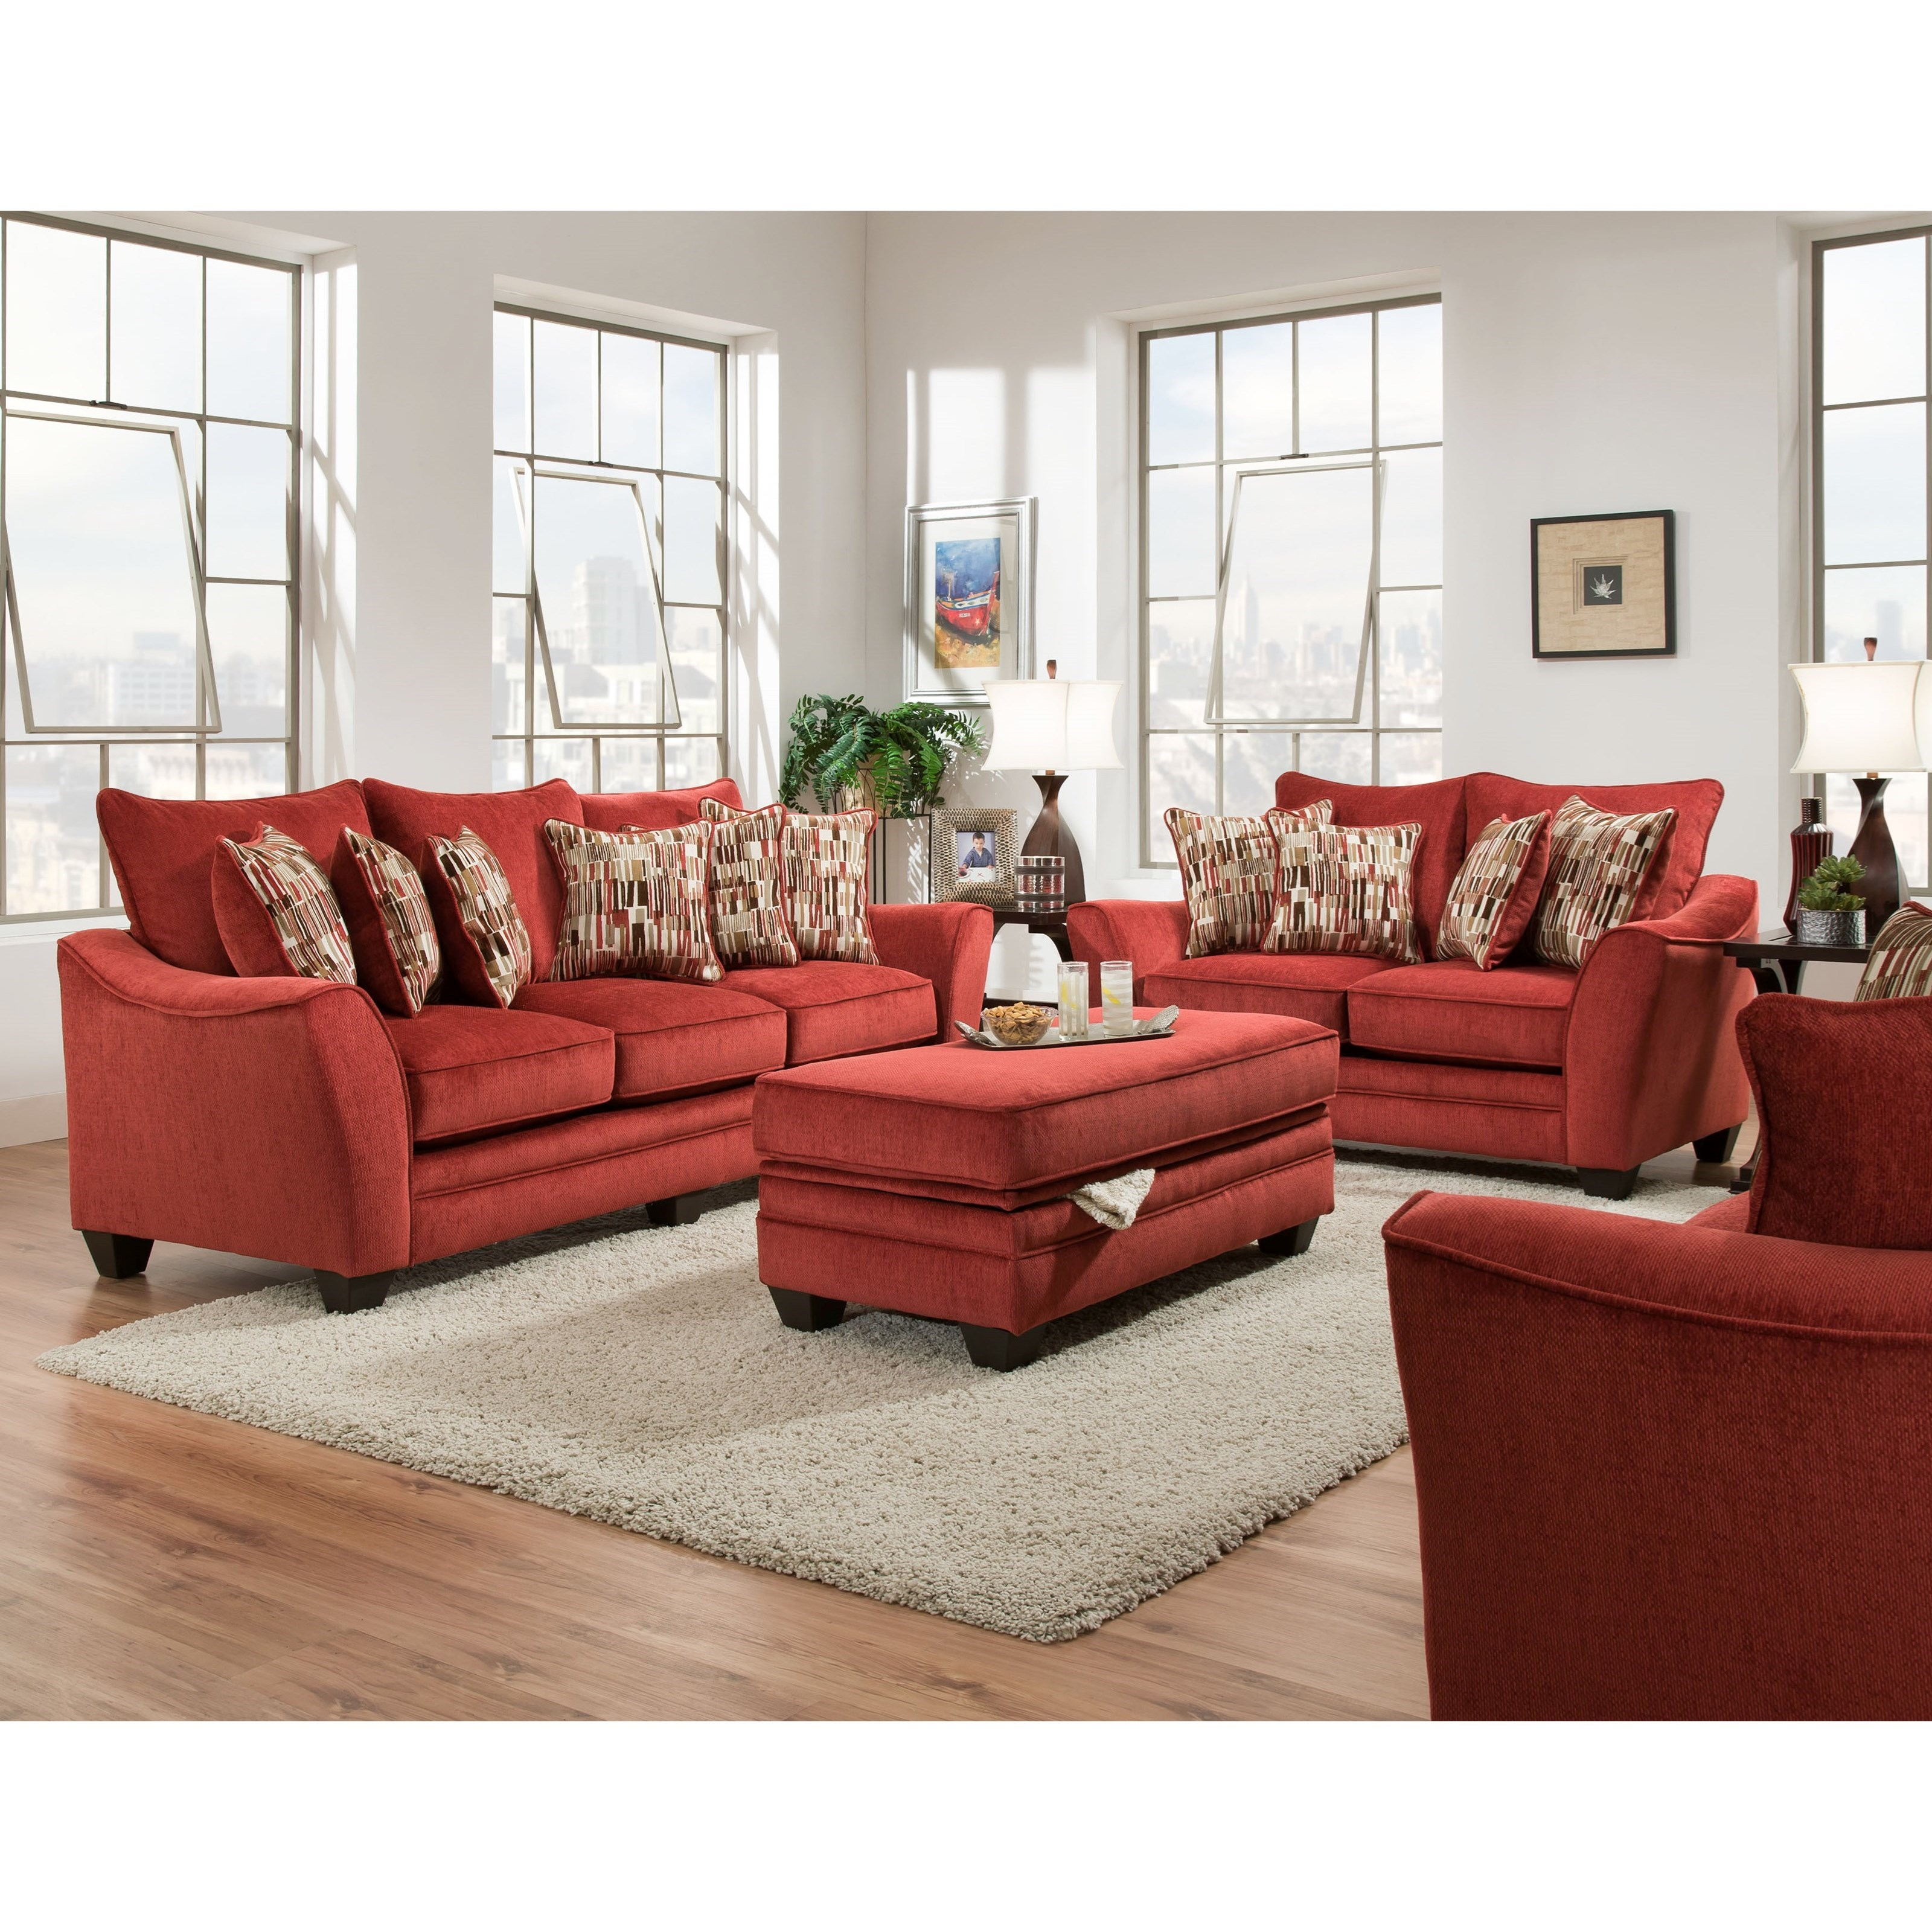 American Furniture 3850 Stationary Living Room Group Vandrie Home Furnishings Stationary